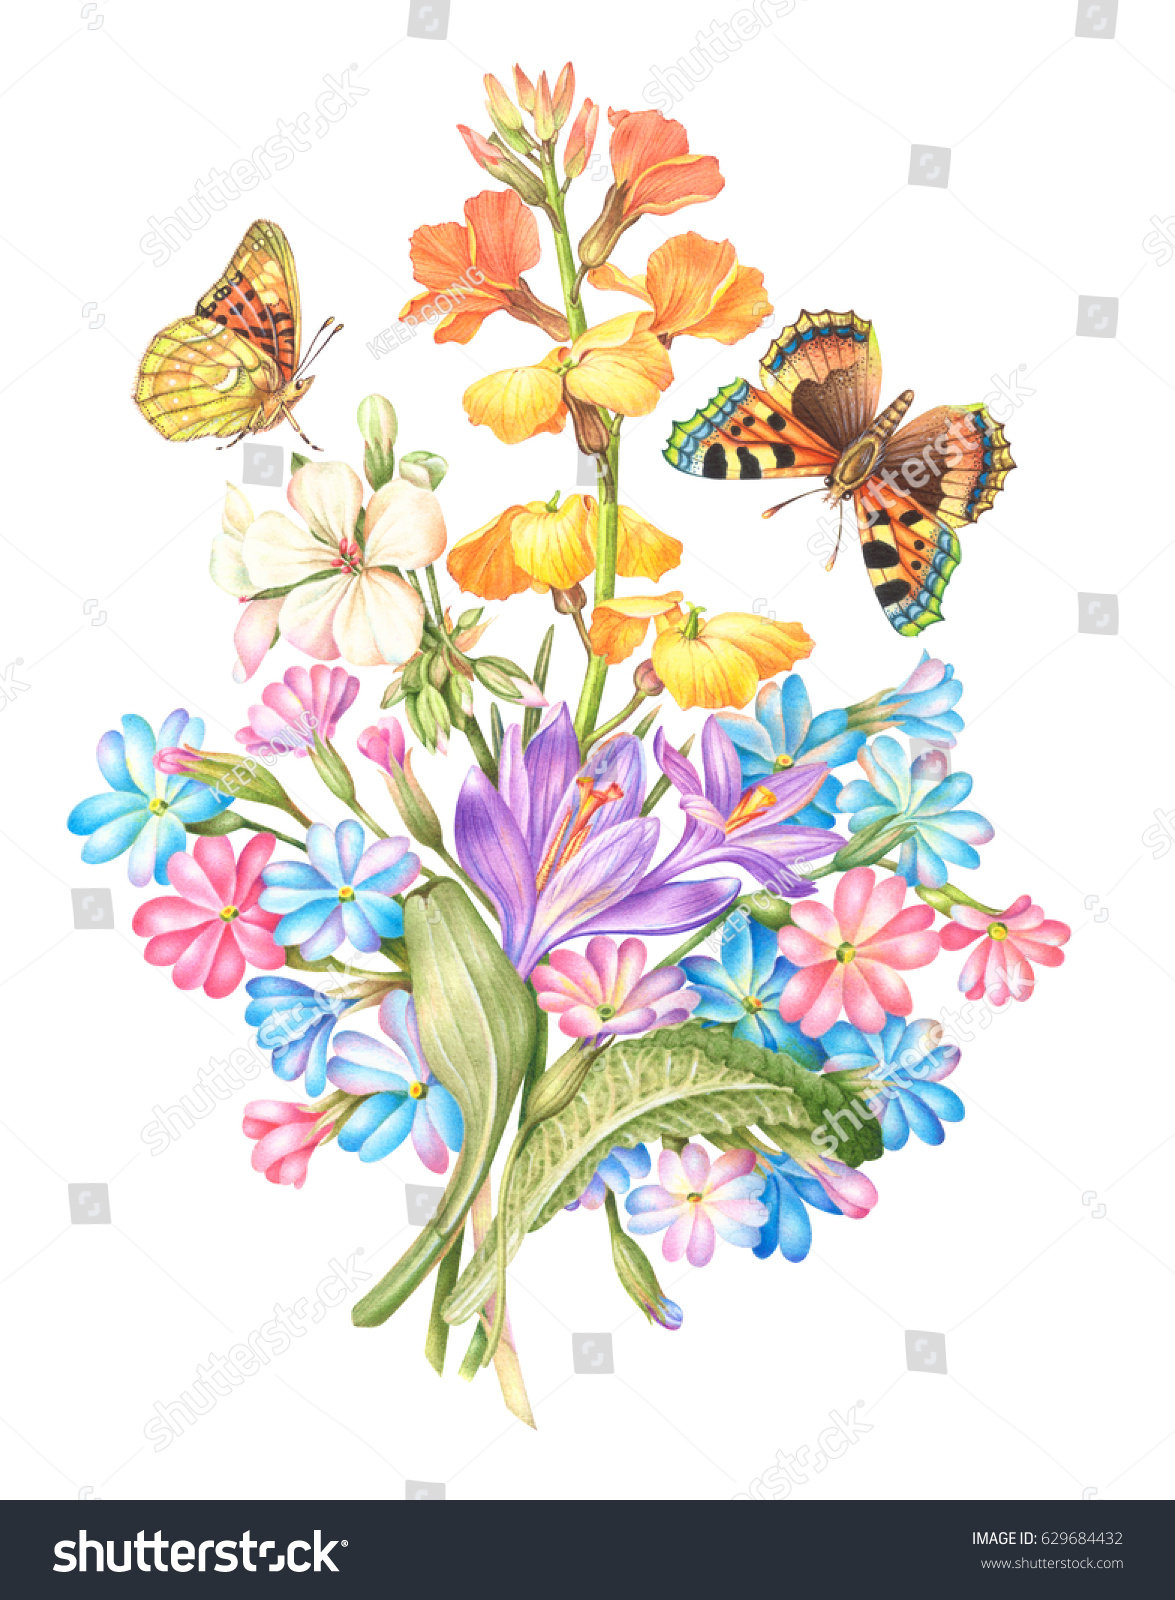 Vintage Watercolor Greeting Card With Blooming Flowers And Butterflies White Background Clipping Path Included